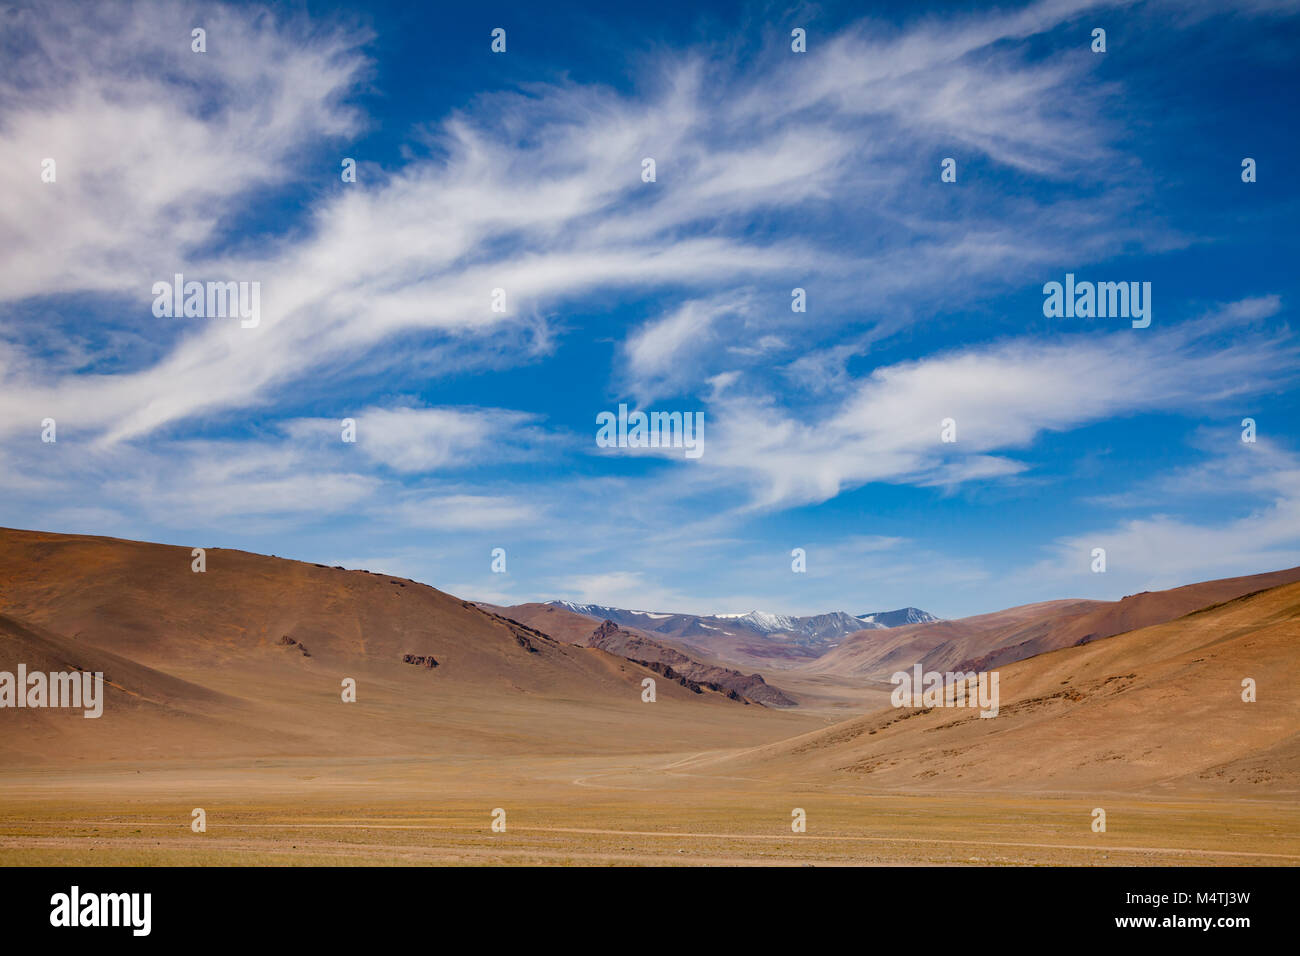 Uninhabited mountain valley in Western Mongolia Altay Mountains at summer - Stock Image